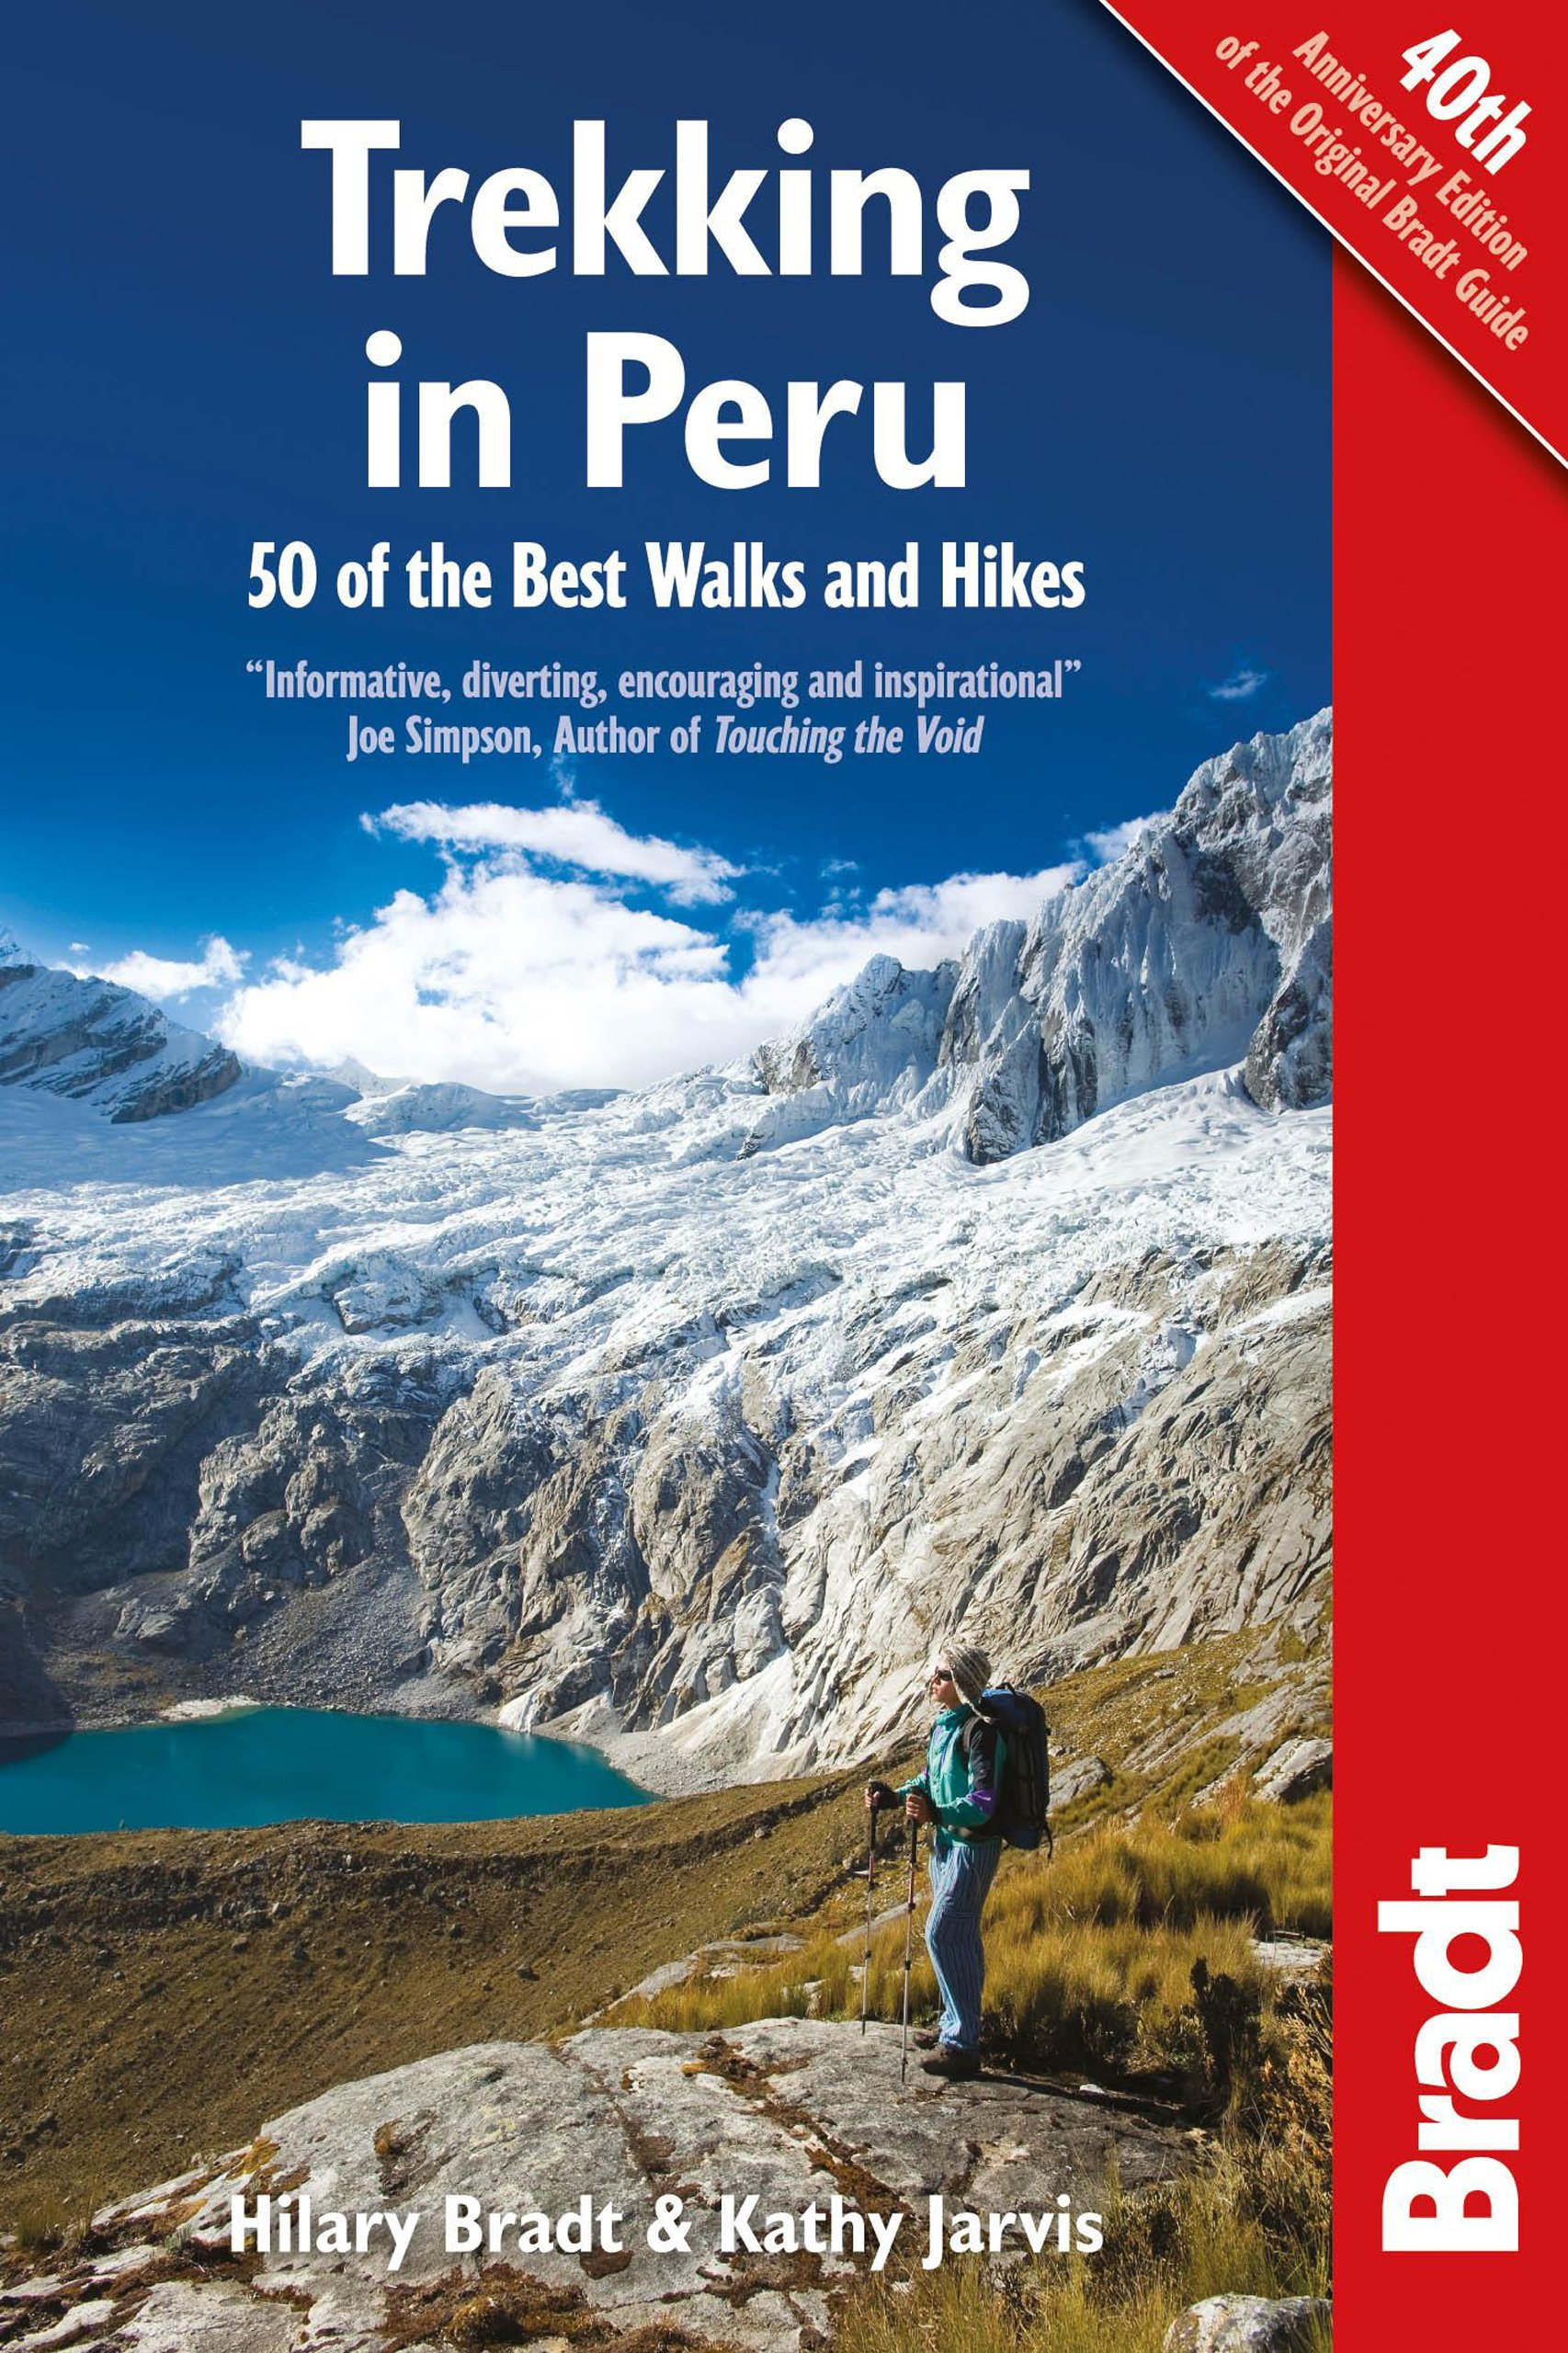 trekking in peru guidebook